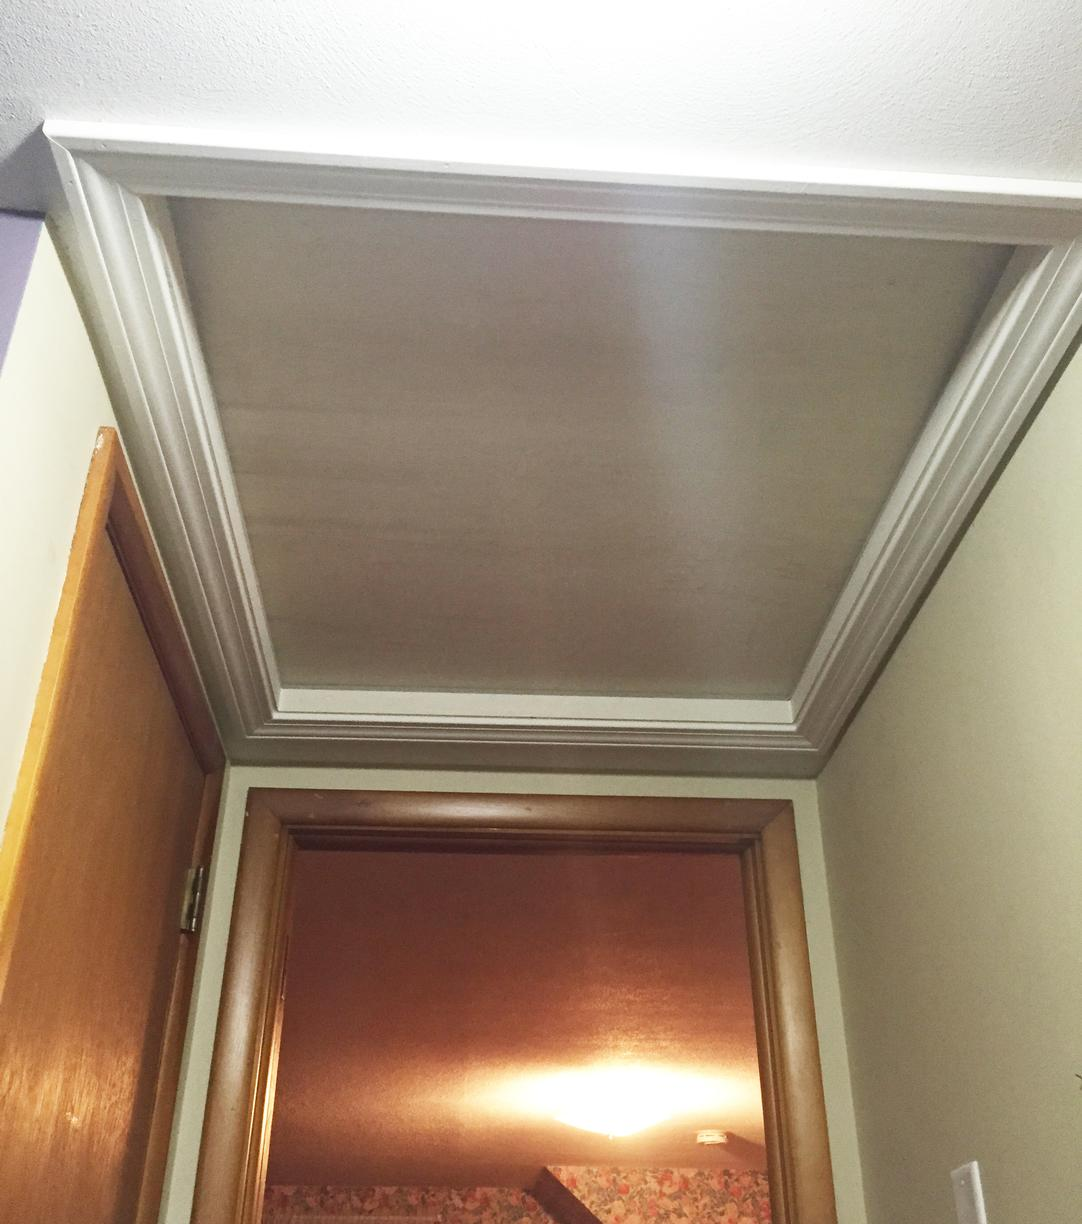 Attic Hatch Cover in Granby, CT - After Photo